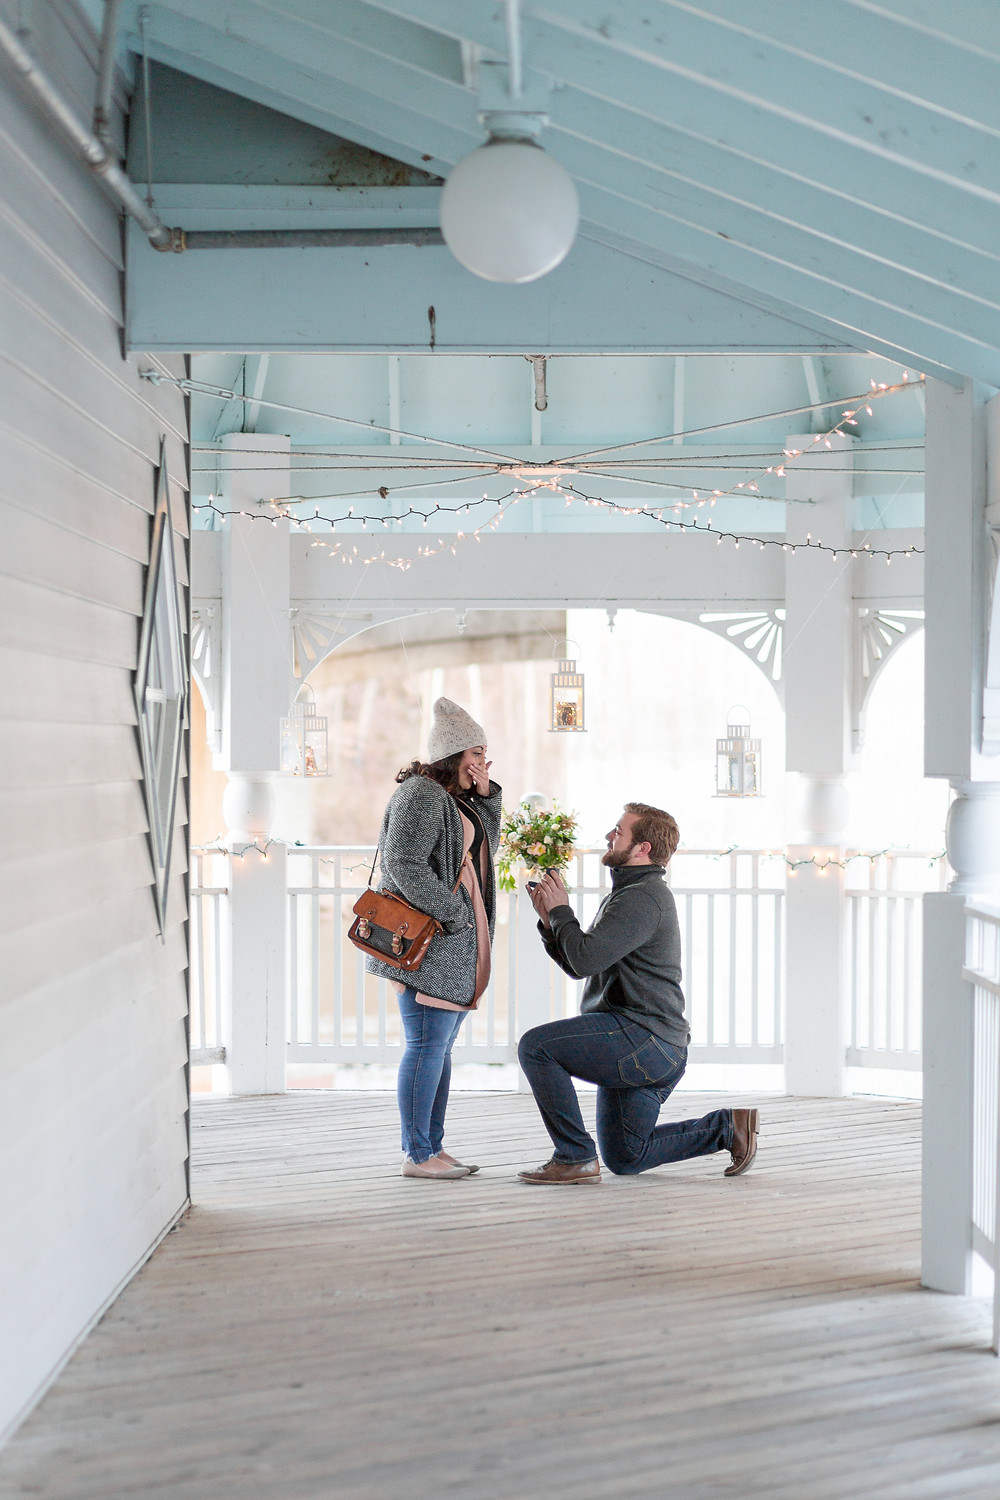 occoquan proposal down on one knee